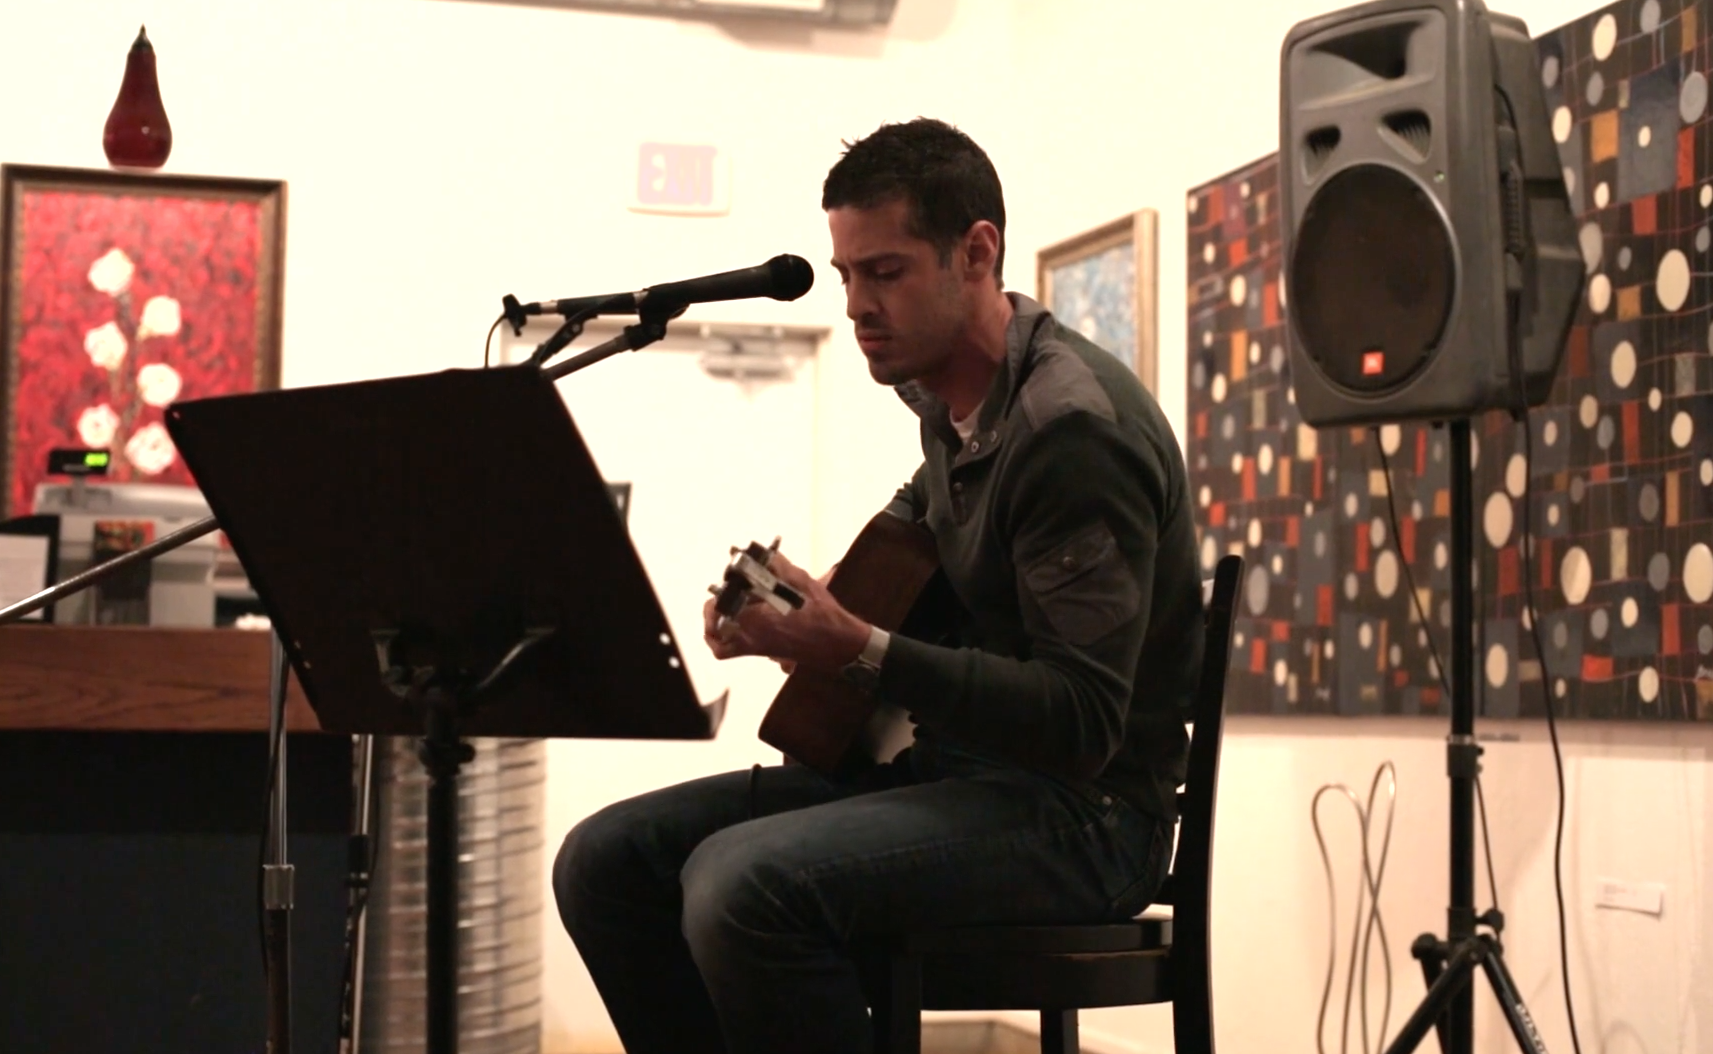 Top 10 Reasons to Join us for Open Mic